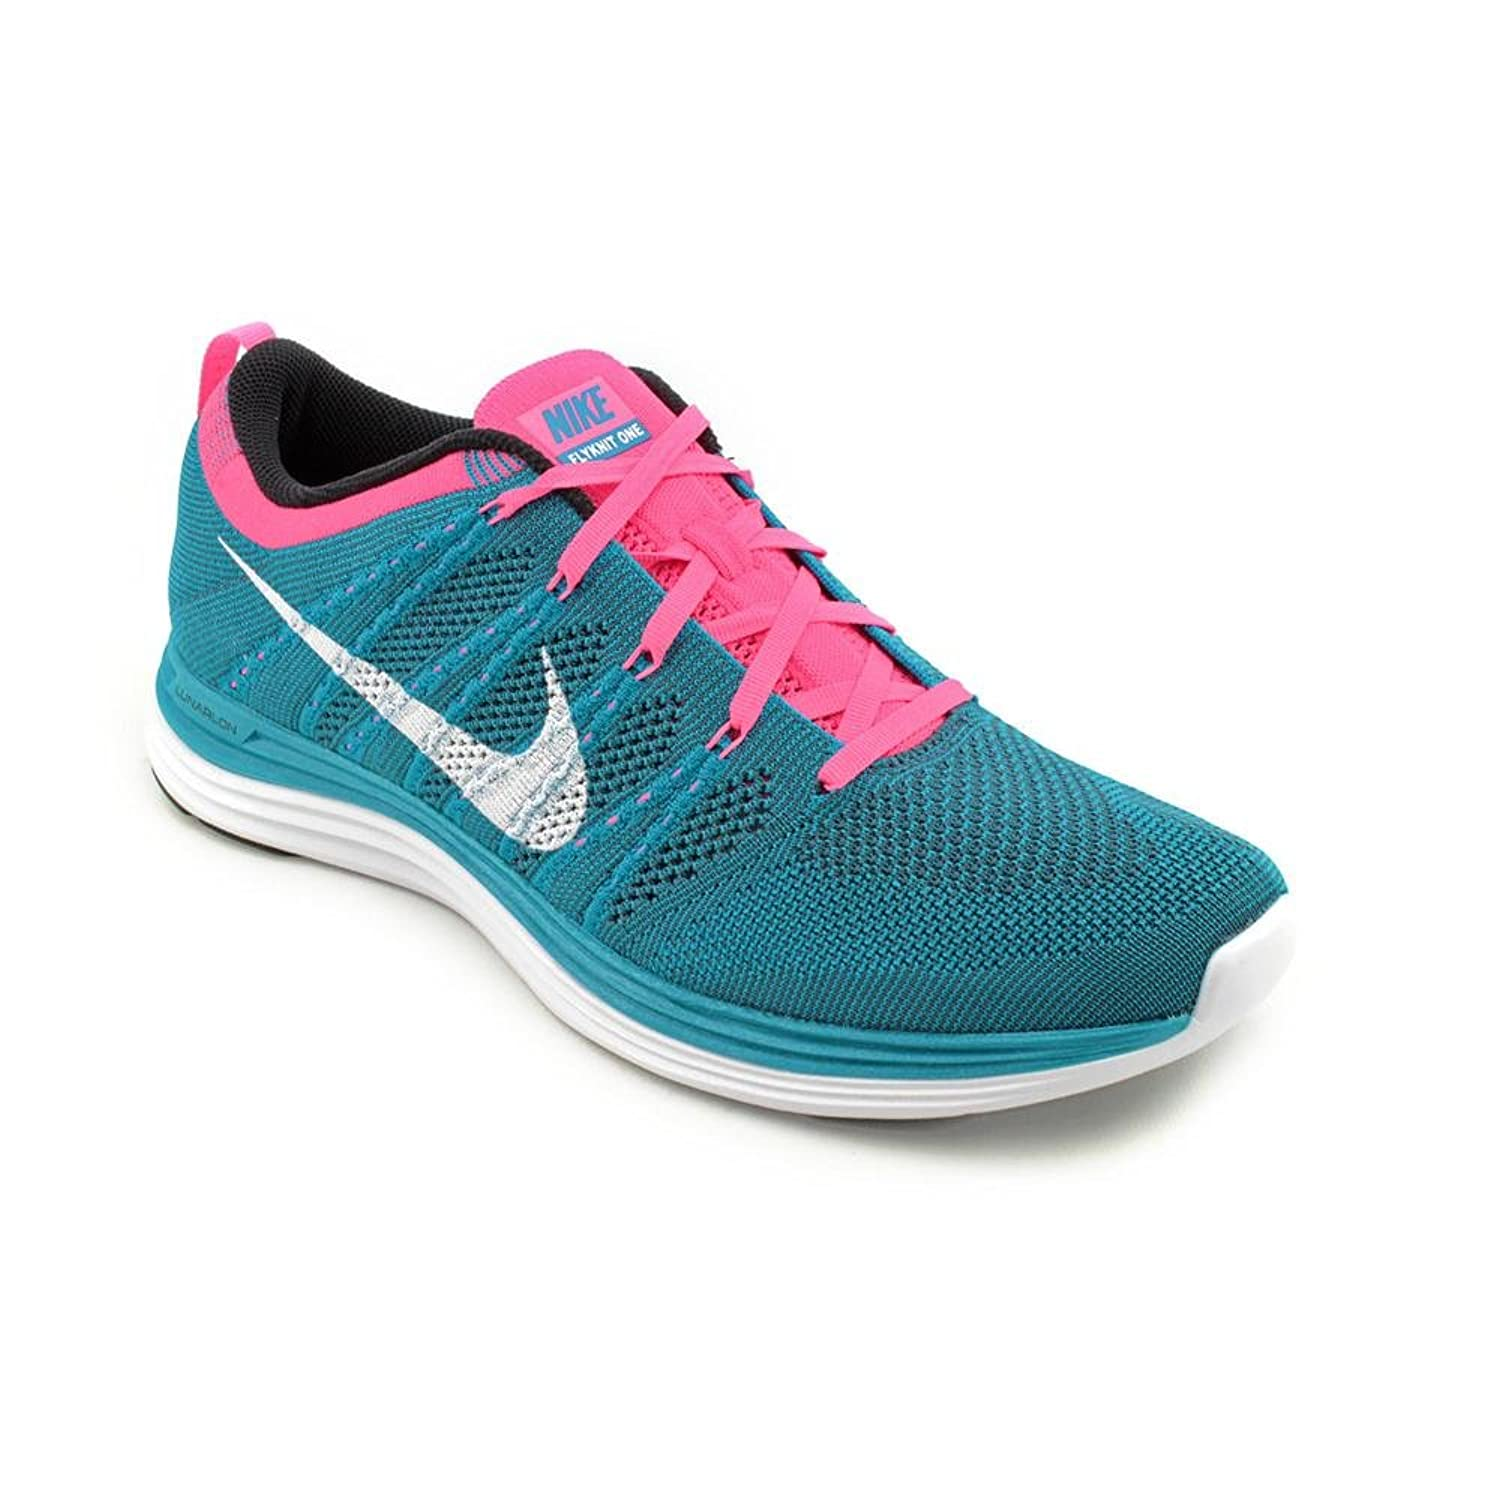 Nike Men's FlyKnit One+ Running Shoes Size 13 Neo ...